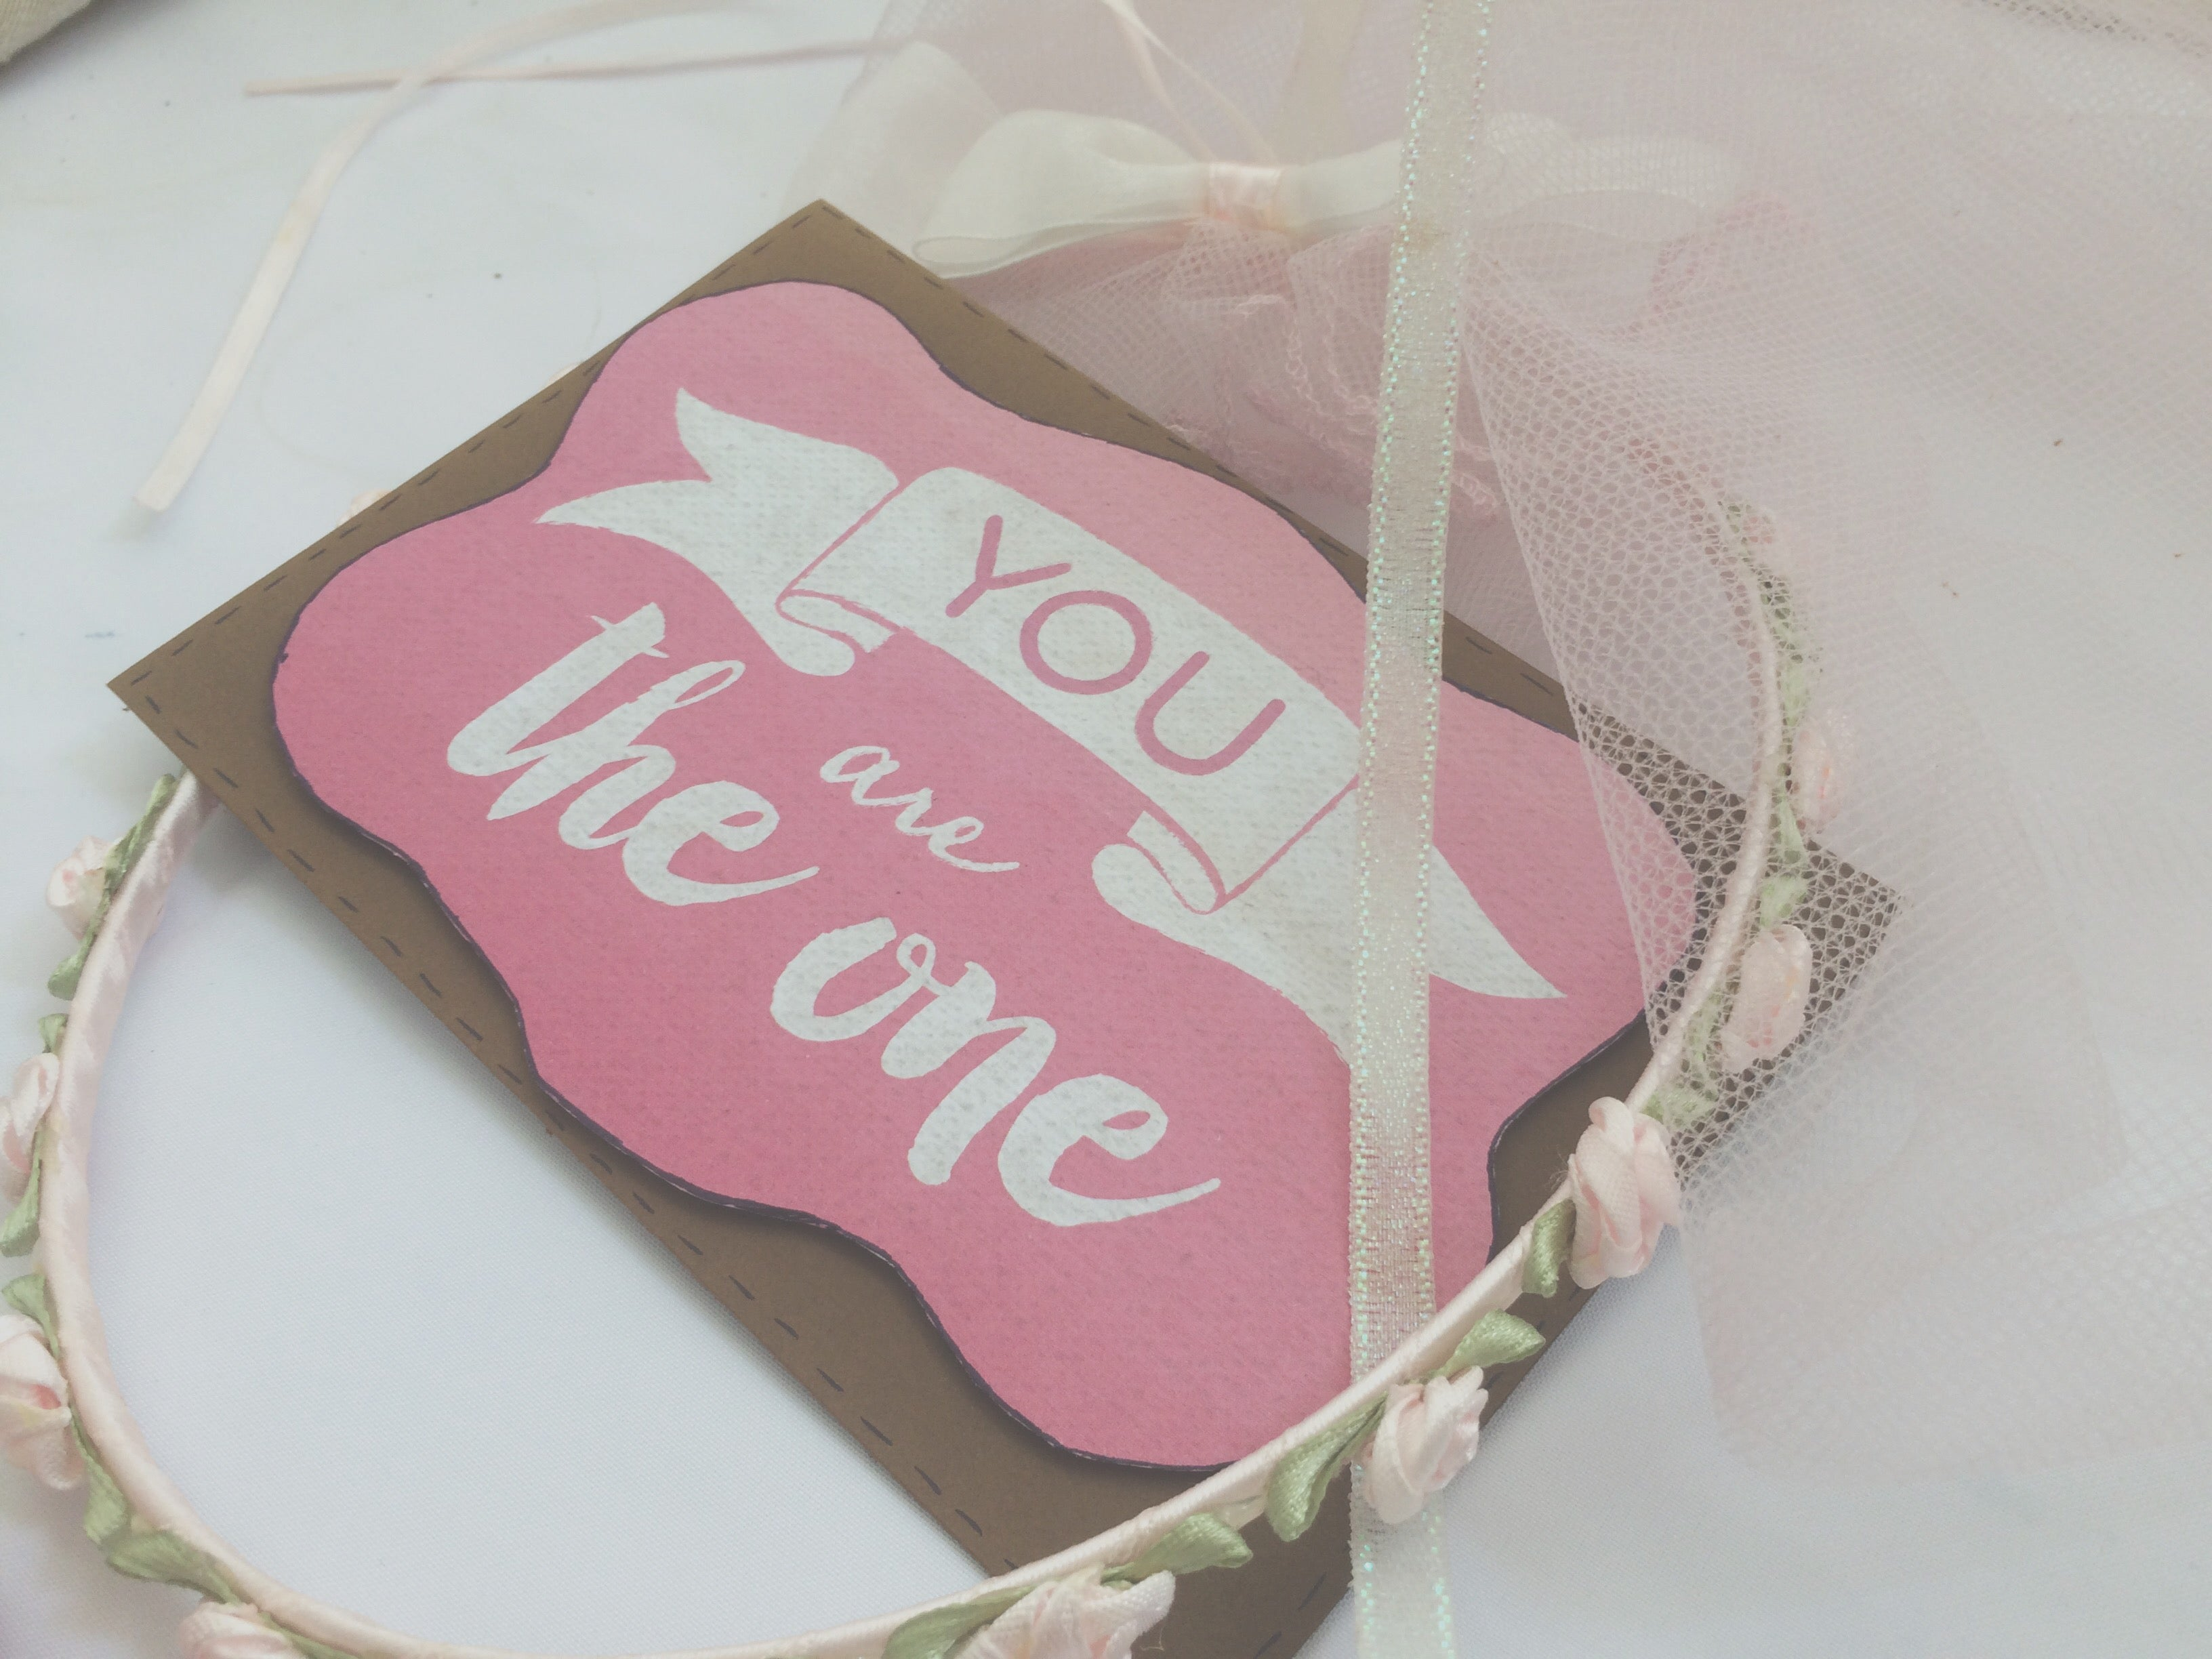 pink variant of Puddle of Love handmade Valentine's Day card by Thoughtfully Handmade